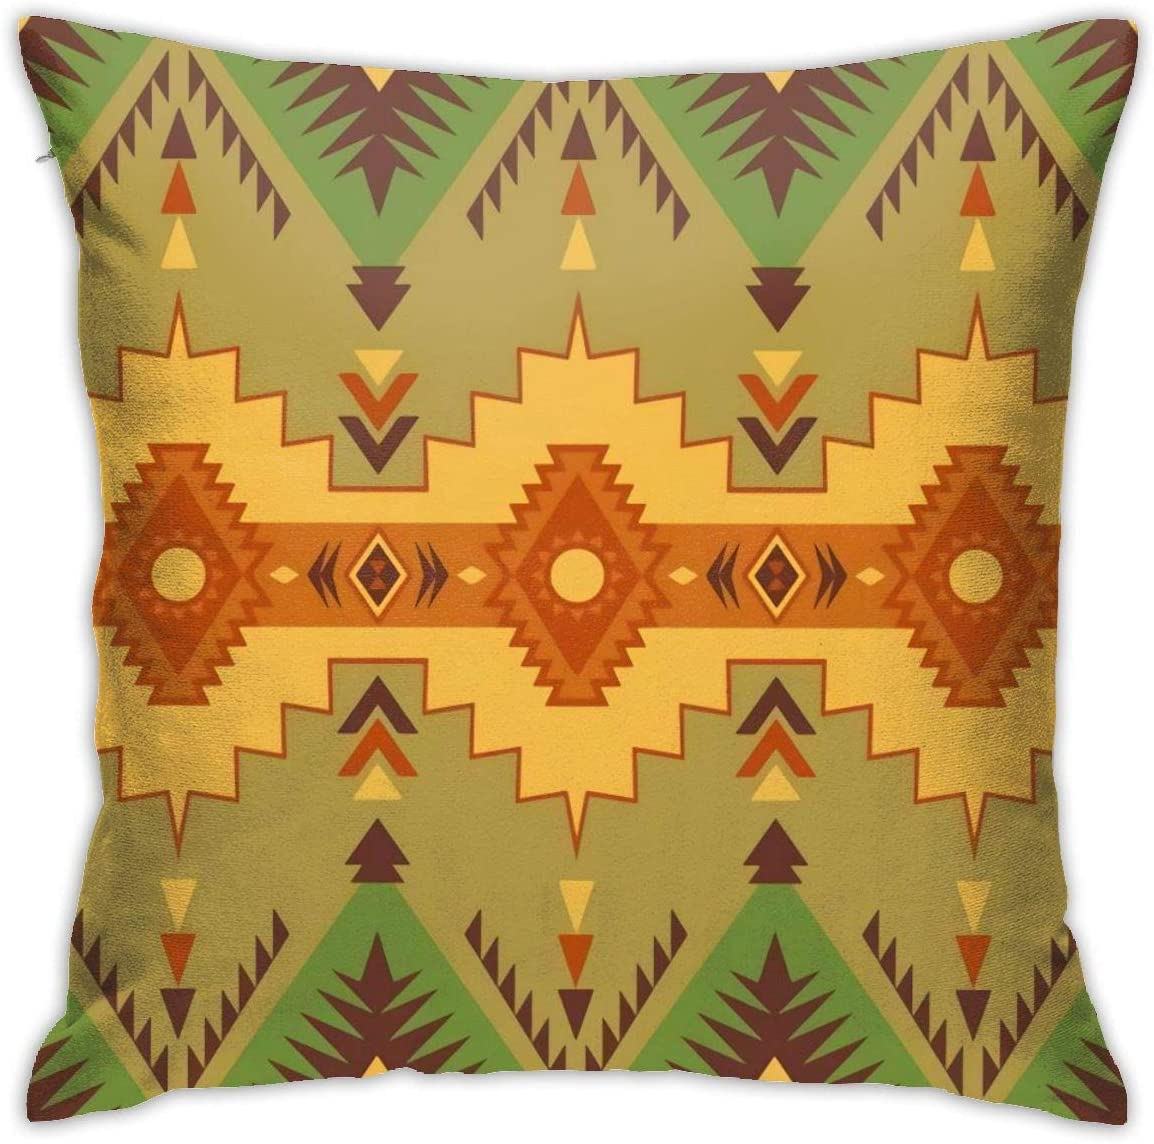 Antvinoler Native Southwest American Indian Aztec Navajo Pillows Case Soft Throw Pillow Double-Sided Digital Printing Couch Pillowcase Square 45cm45cm